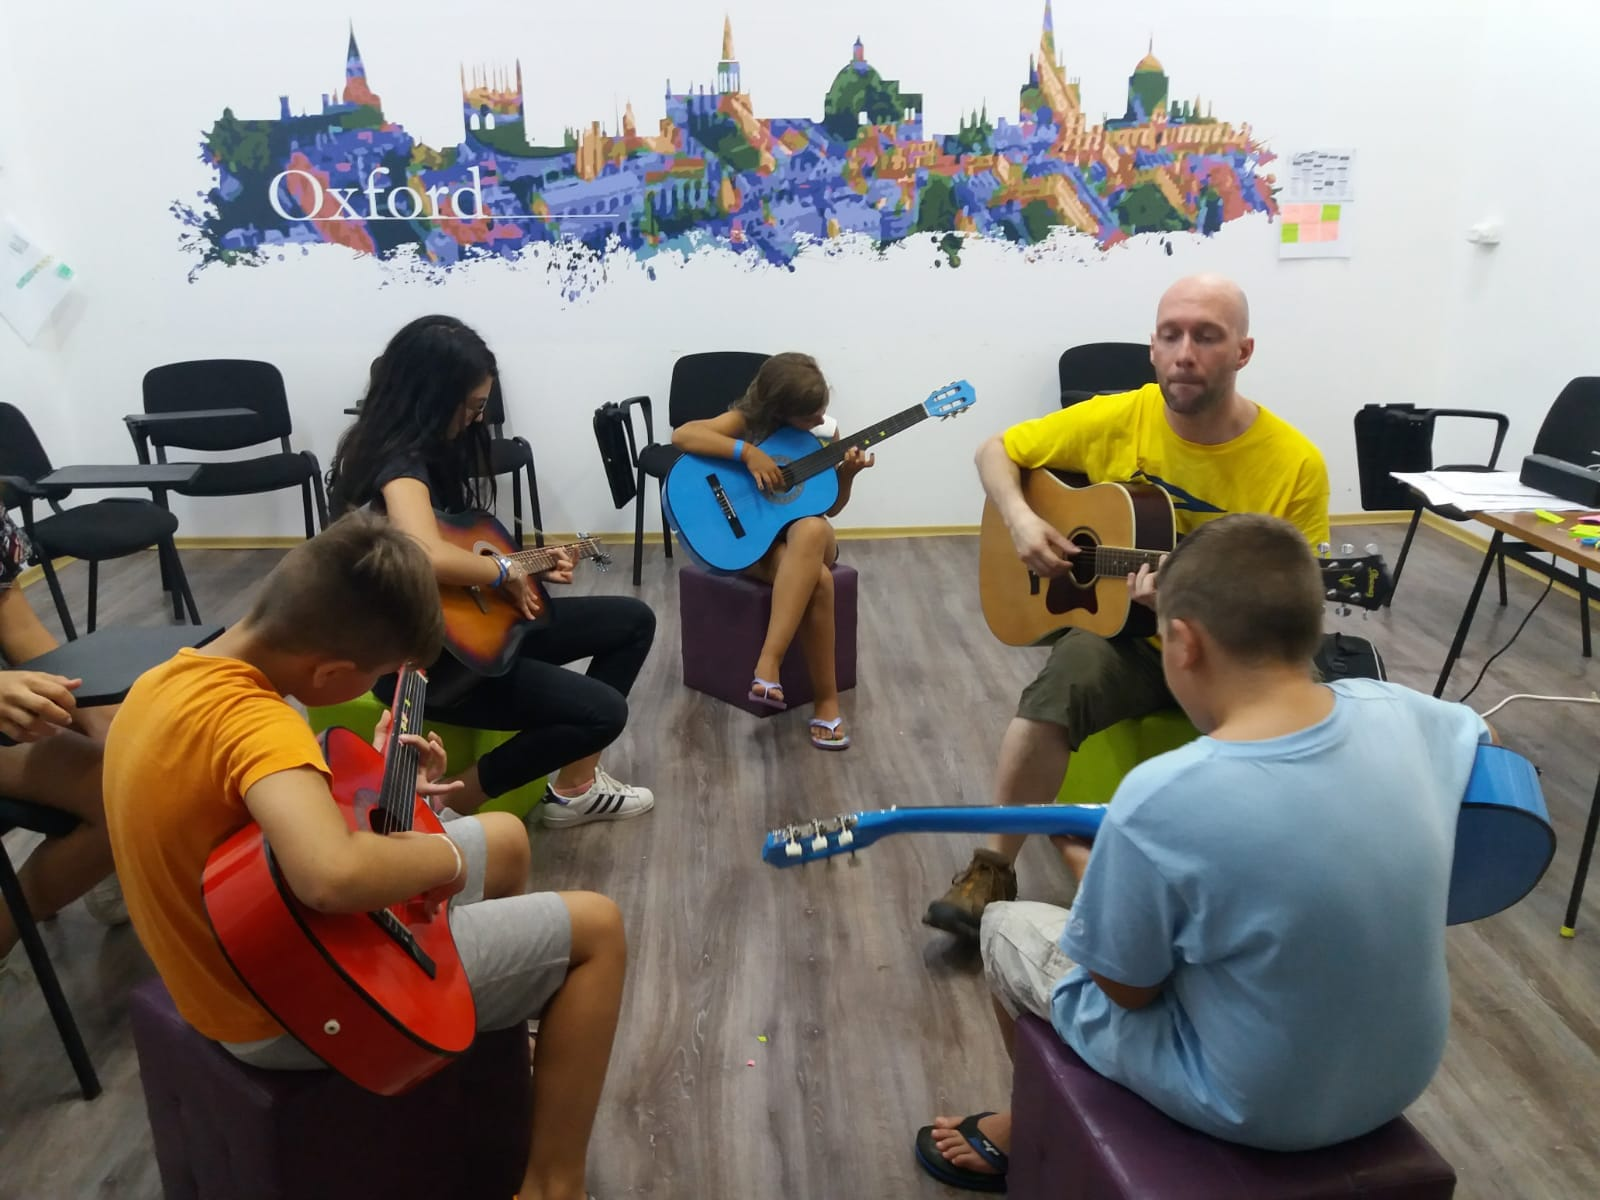 Z camp, Day 14 - music workshop - teacher, 2 girls and 2 boys, each with a guitar playing